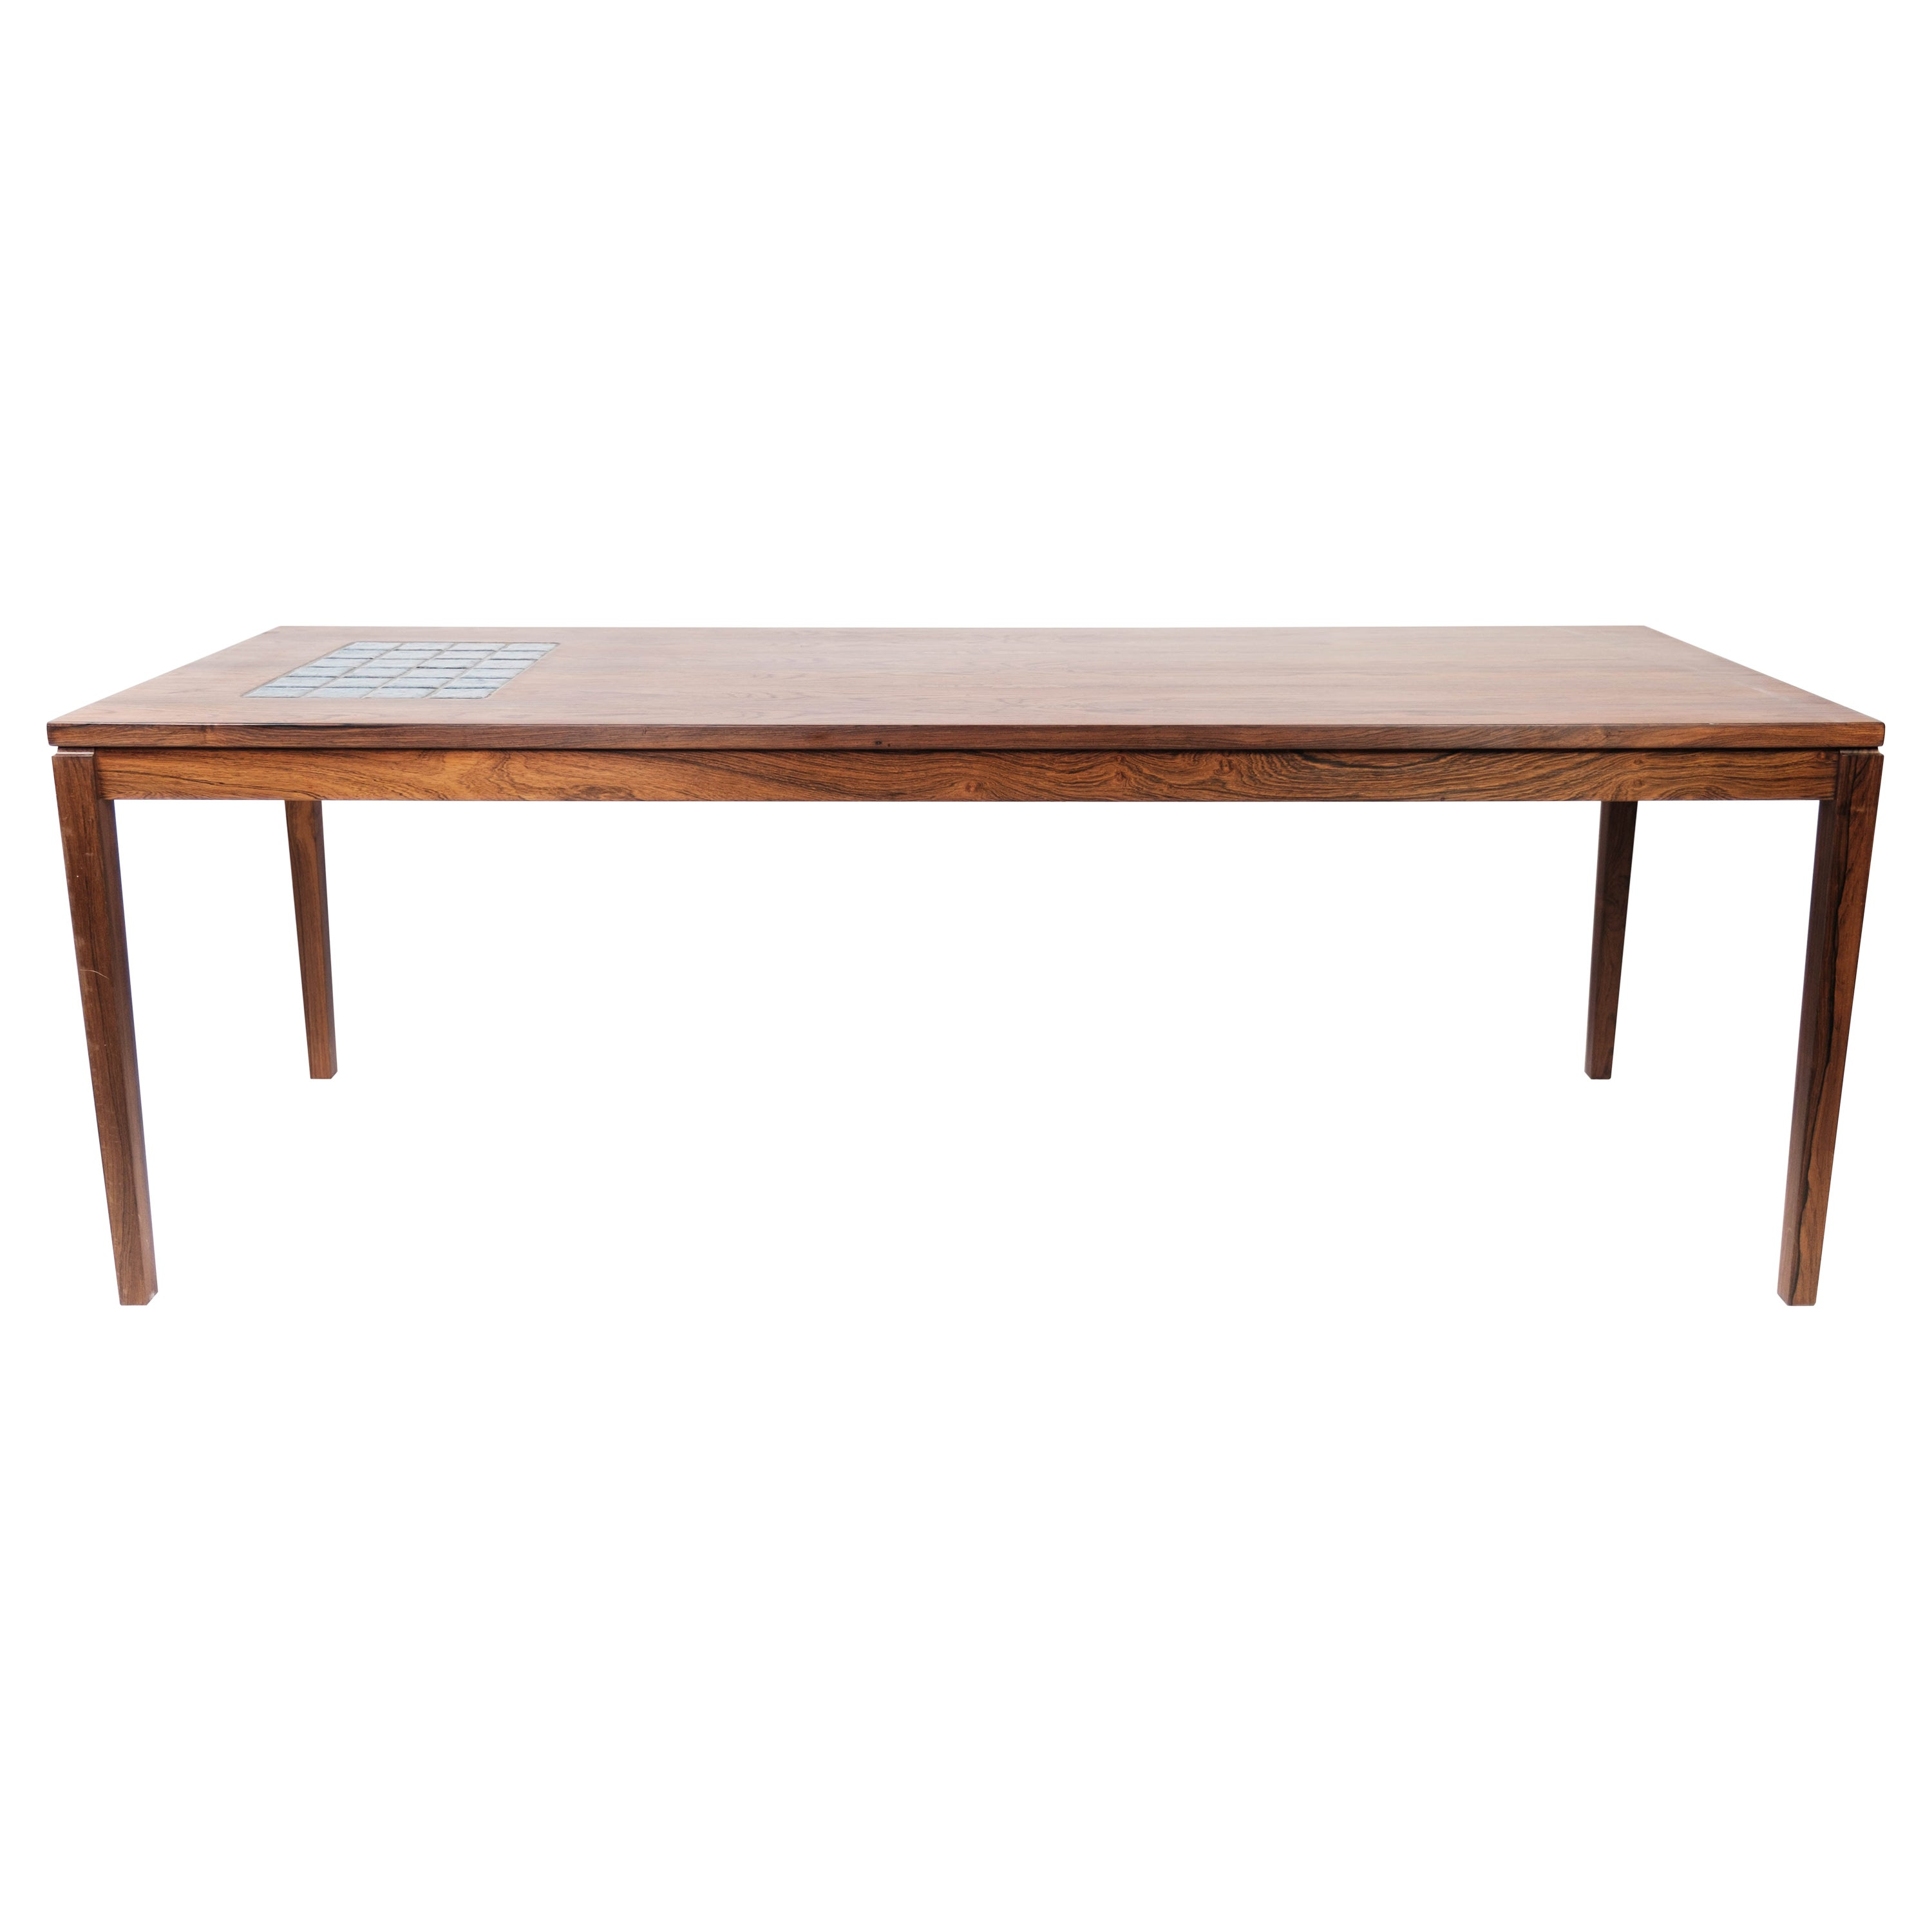 Coffee Table in Rosewood with Blue Tiles of Danish Design from the 1960s